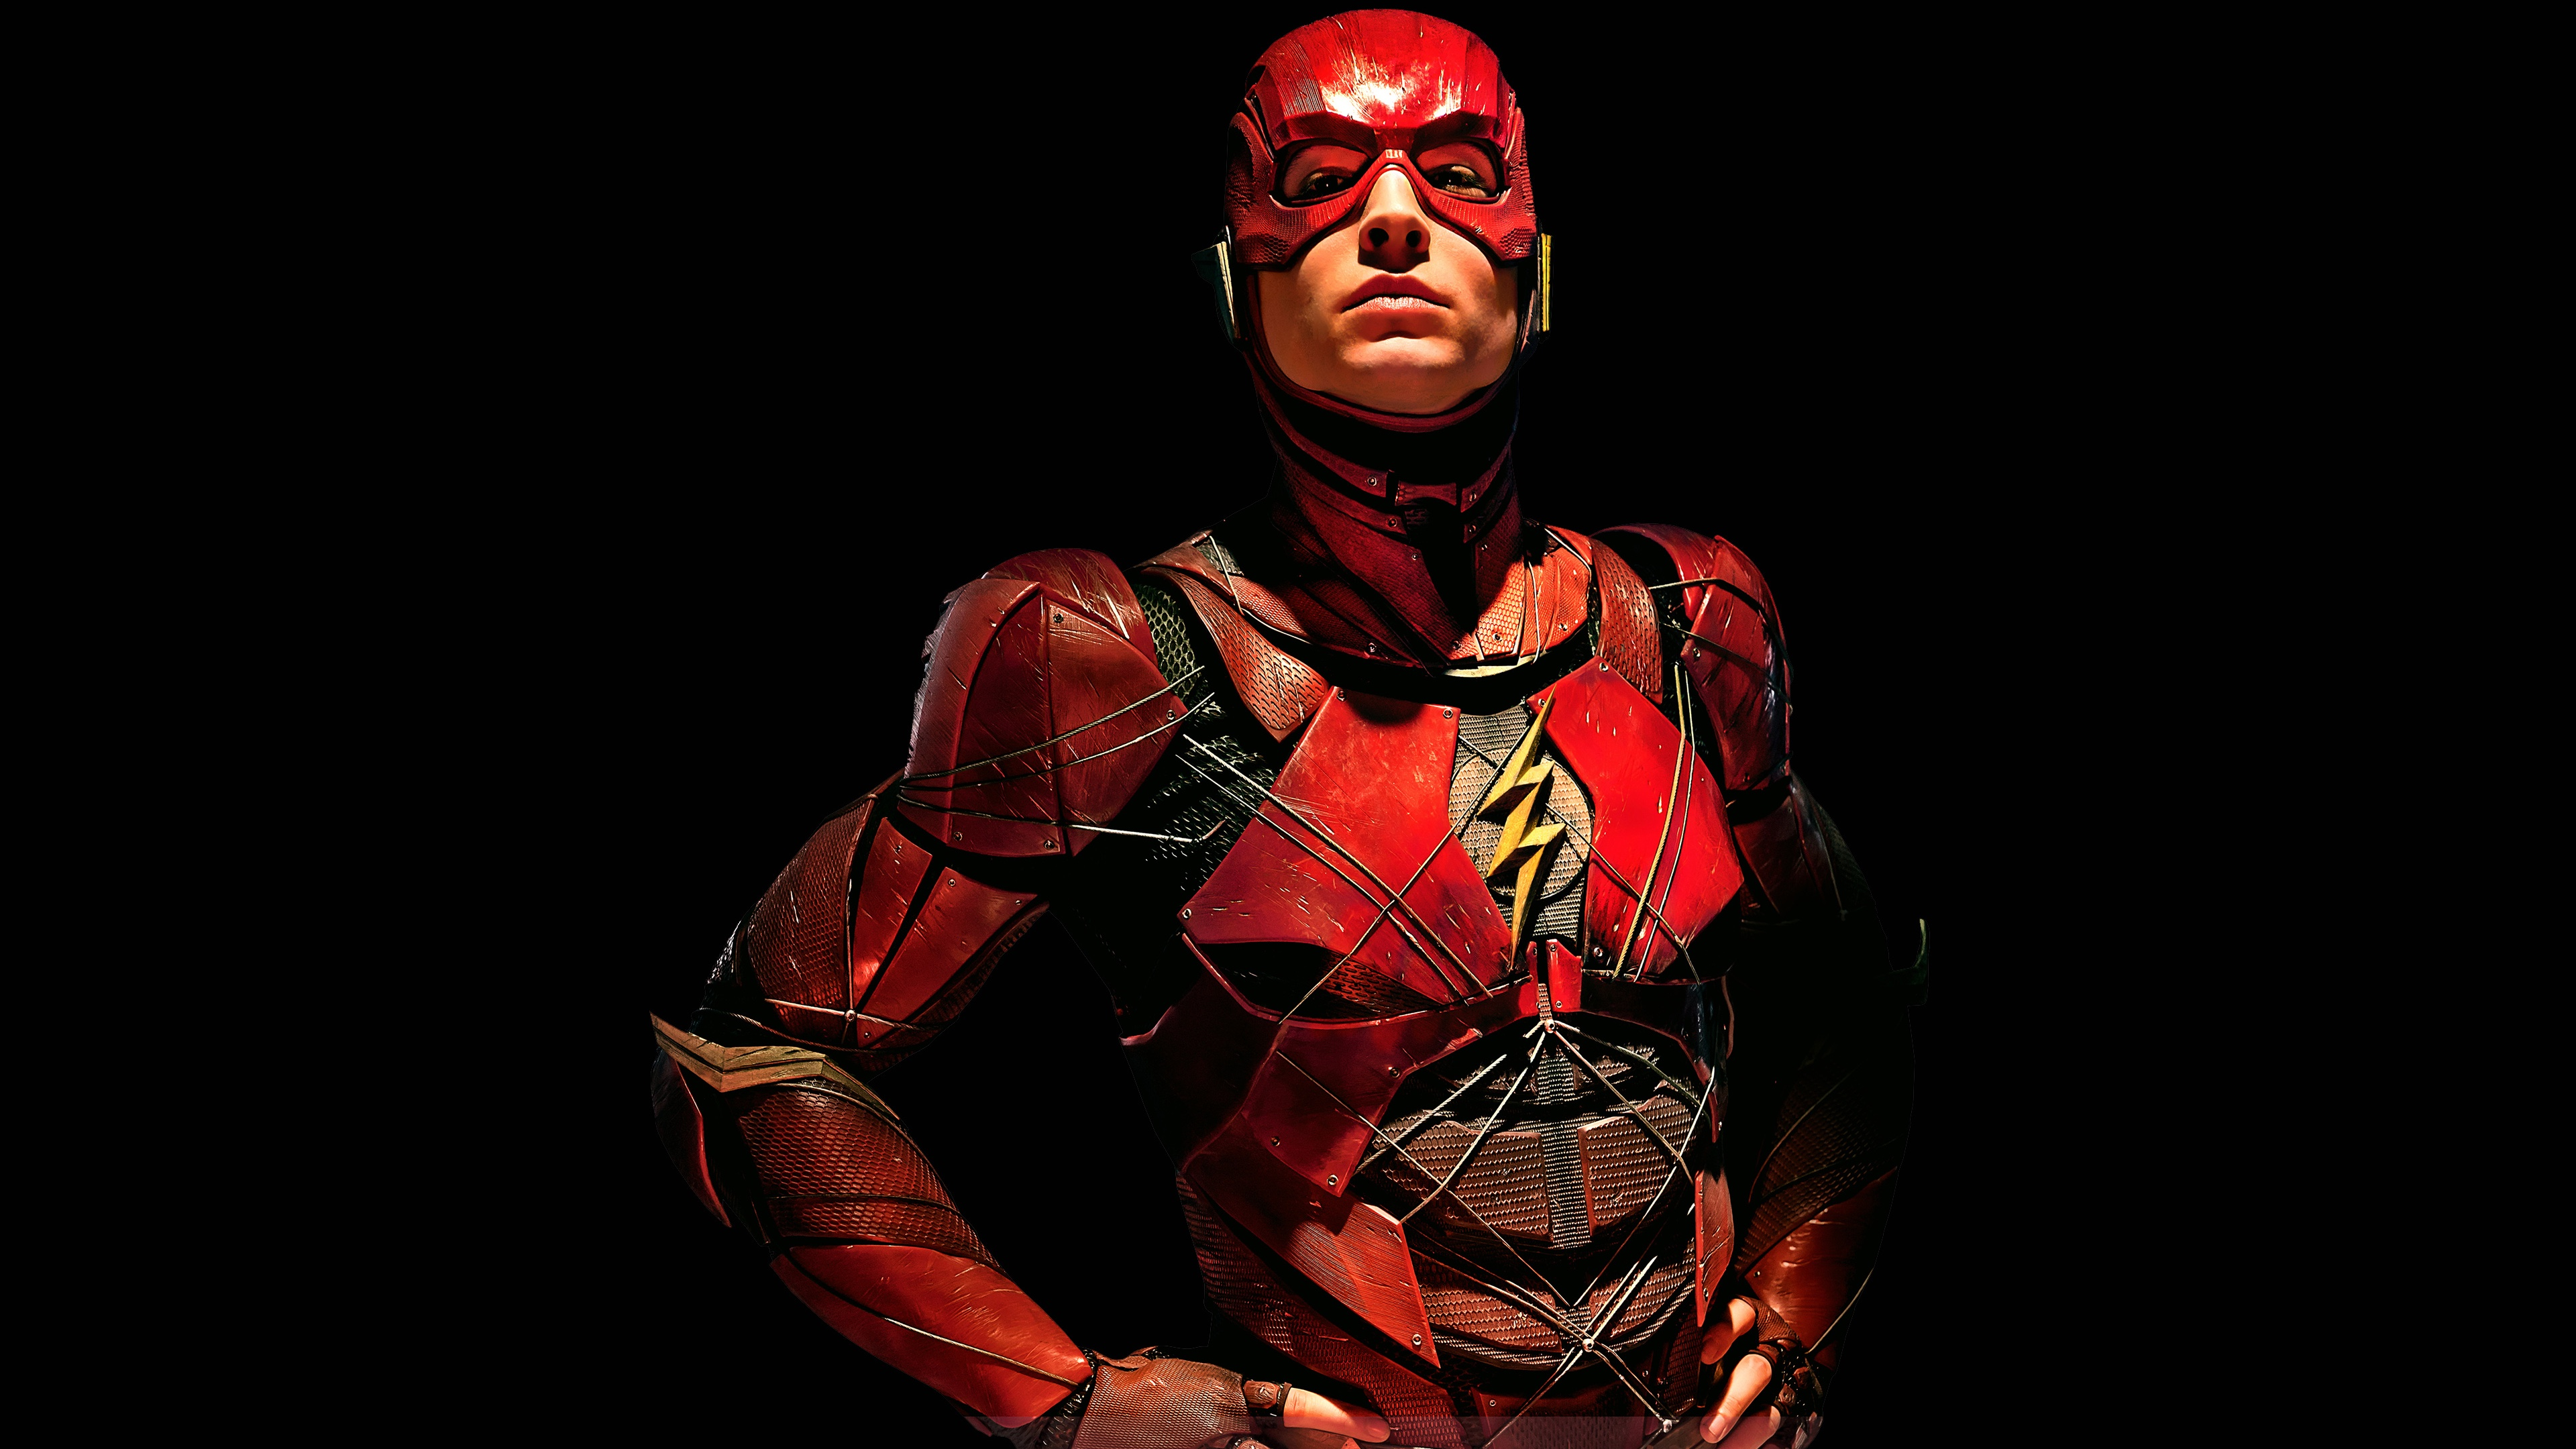 the_flash_justice_league_hd_5k-wide F